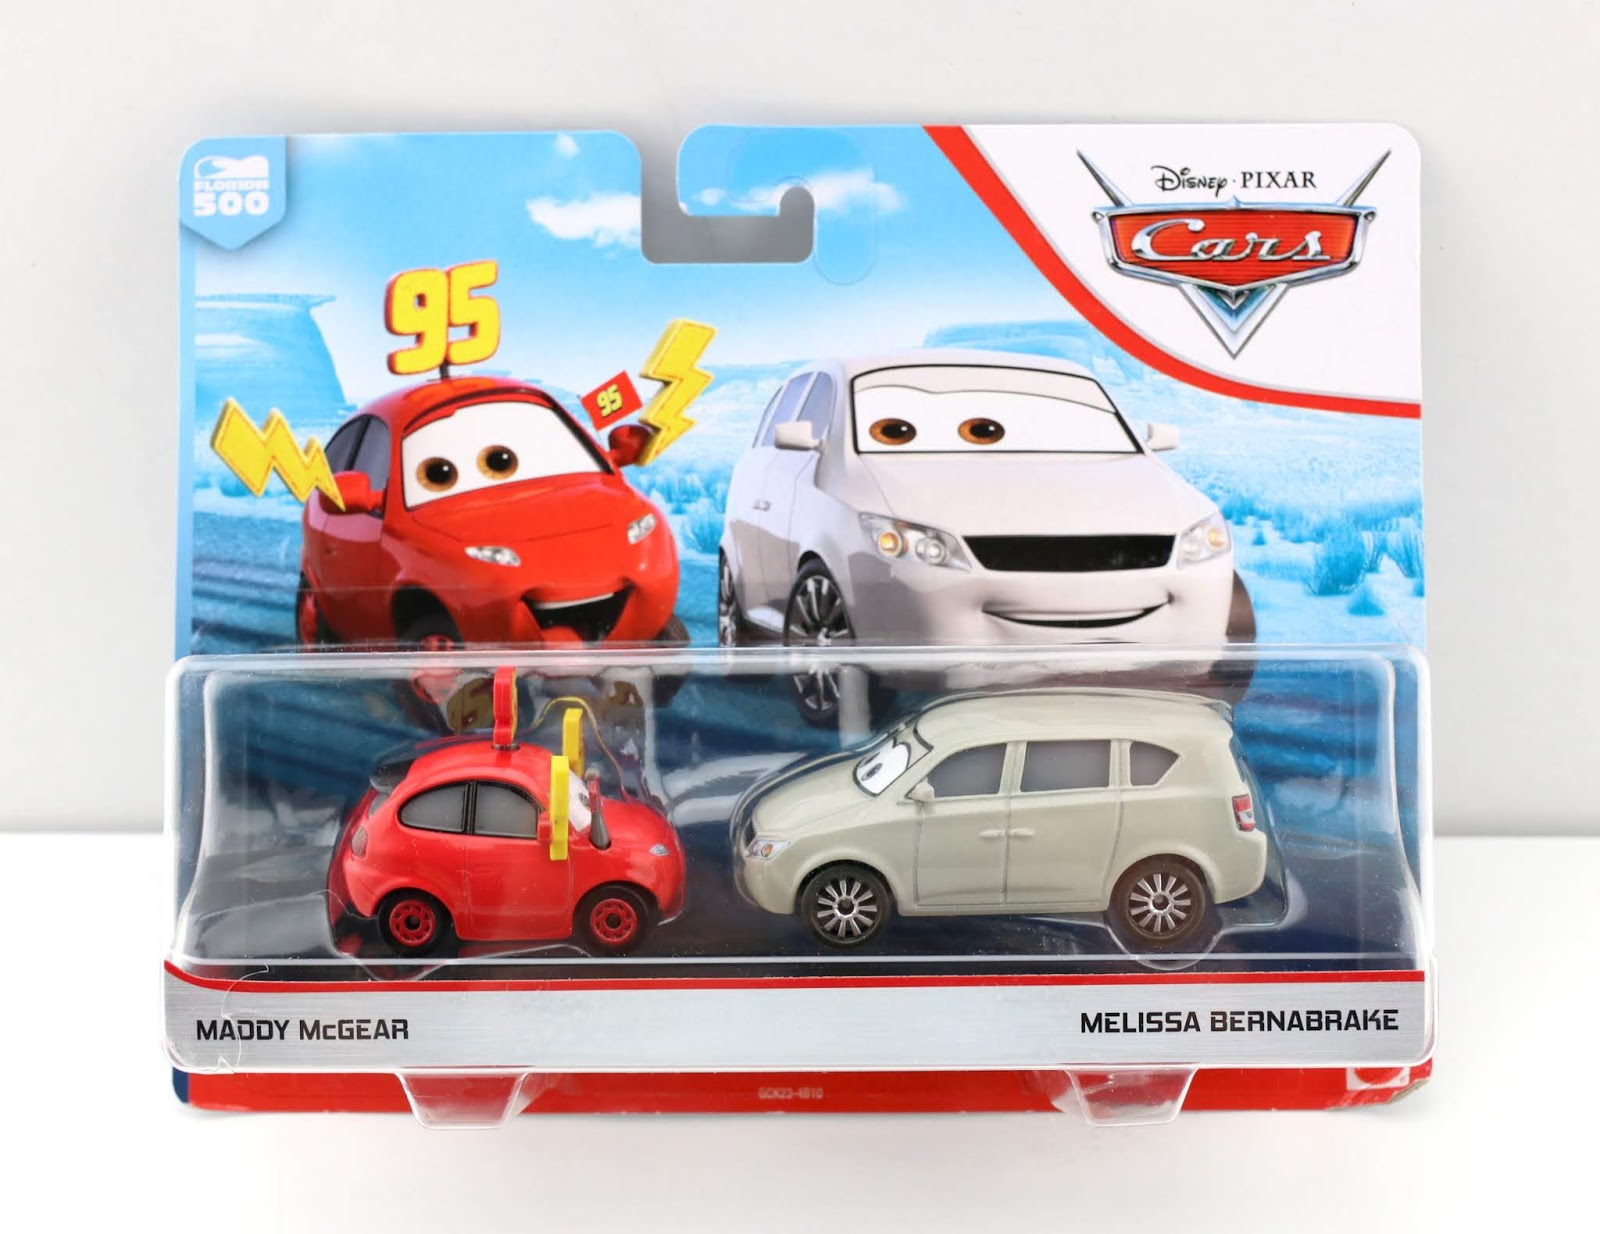 Cars 3 Maddy McGear and Melissa Bernabrake diecast review